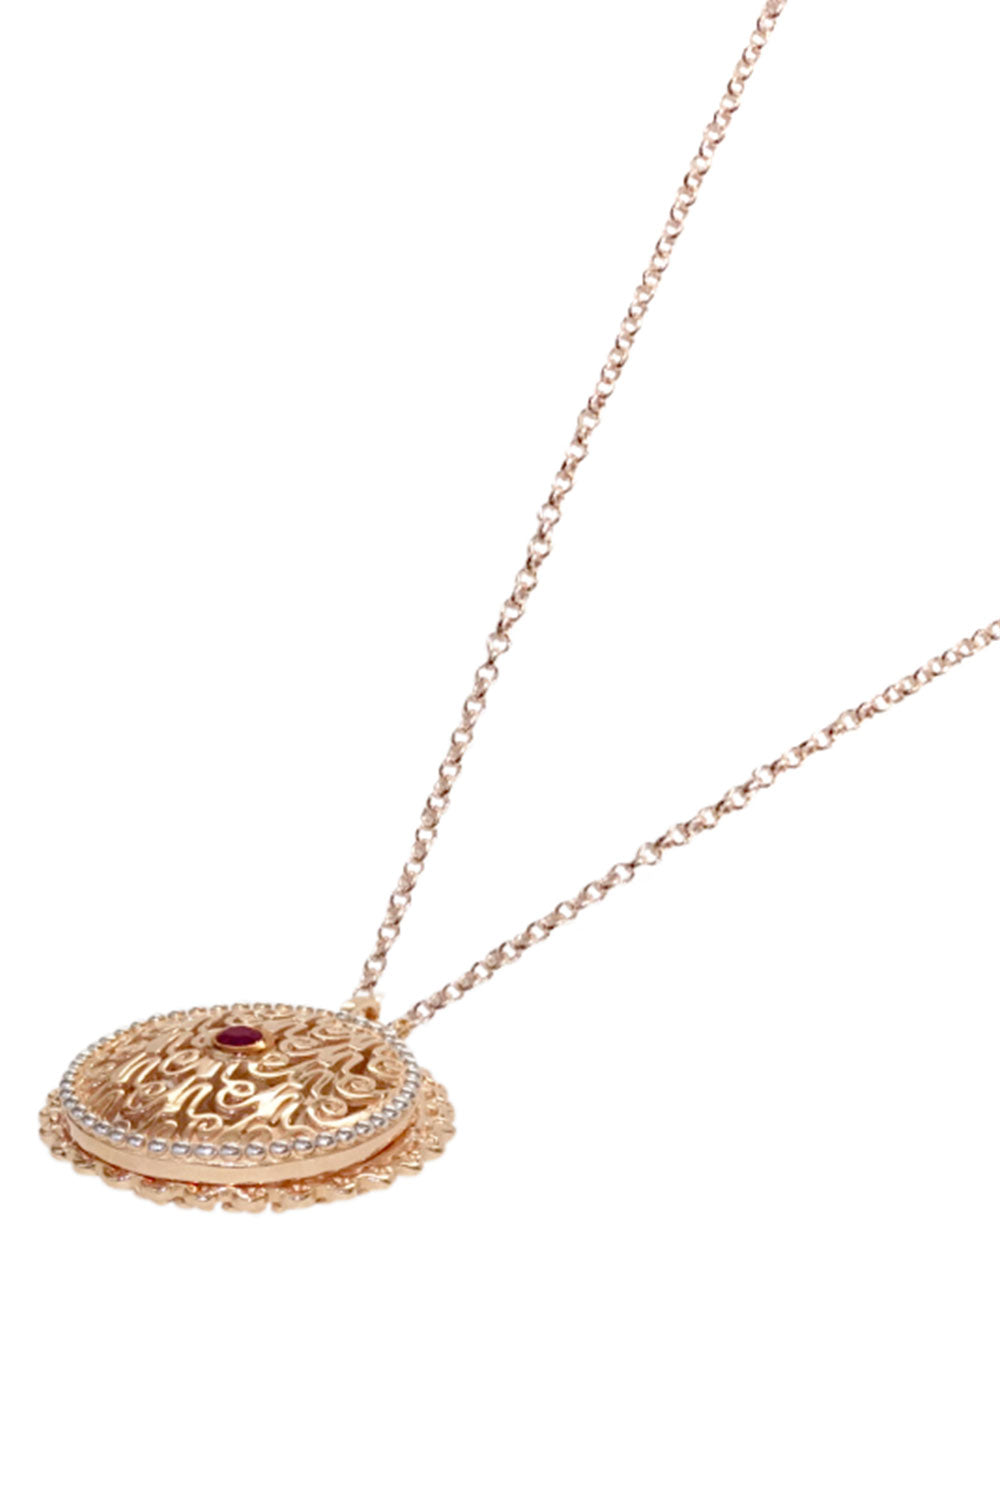 Heirloom Necklace Rose Gold LISA HOFFMAN